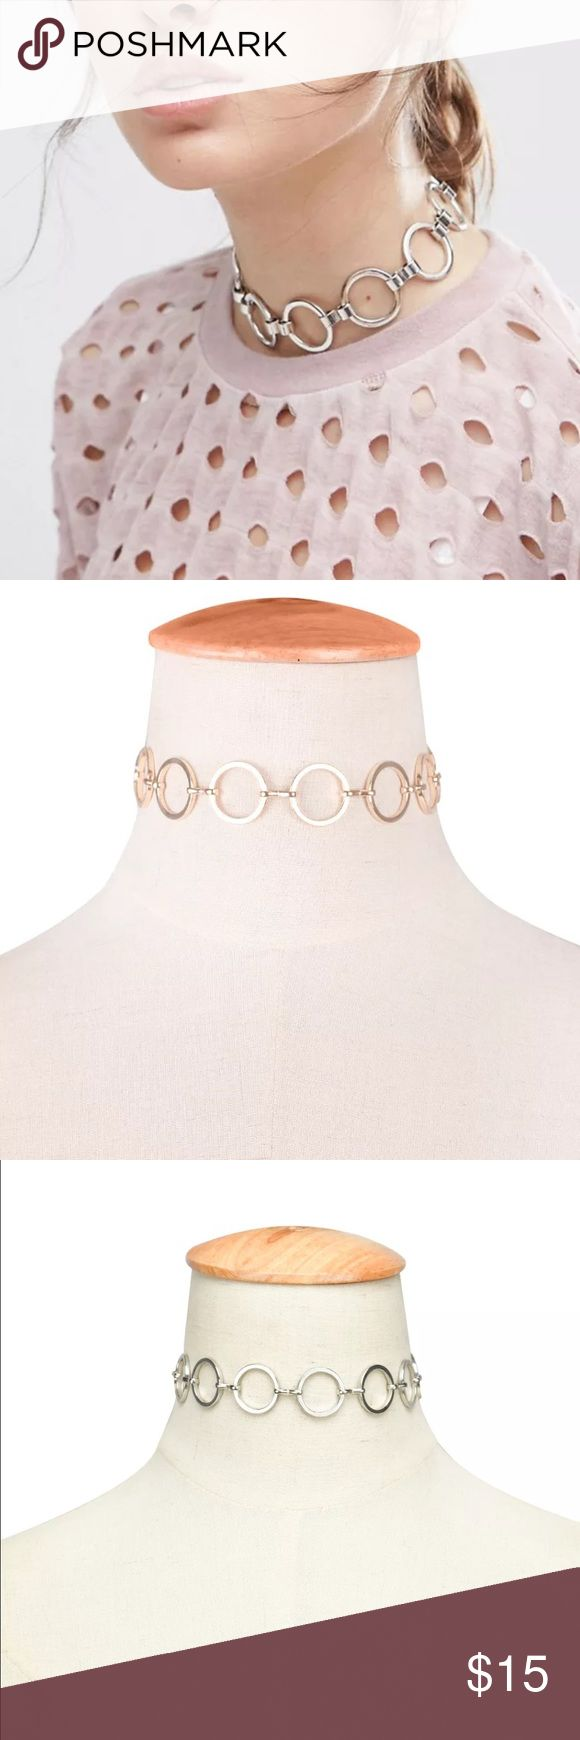 New✨ Circle Chain Link Choker 😍✨ ✨Fashion Jewelry ✨Alloy, Gold Plated, Silver Plated   🔸Brand New✨ 🔸PRICE IS FIRM- already listed at lowest price  🔸If you want to save please look into bundling  🔸In Stock 🔸No Trades 🔸Will ship within 24 hours Monday-Friday  🚫Please -NO- Offers on items priced $10 and under AND ON SALE ITEMS‼️  🚫Serious Inquiries Only❣️  🔹Bundle one or more items from my boutique to only pay one shipping fee✨ Jewelry Necklaces